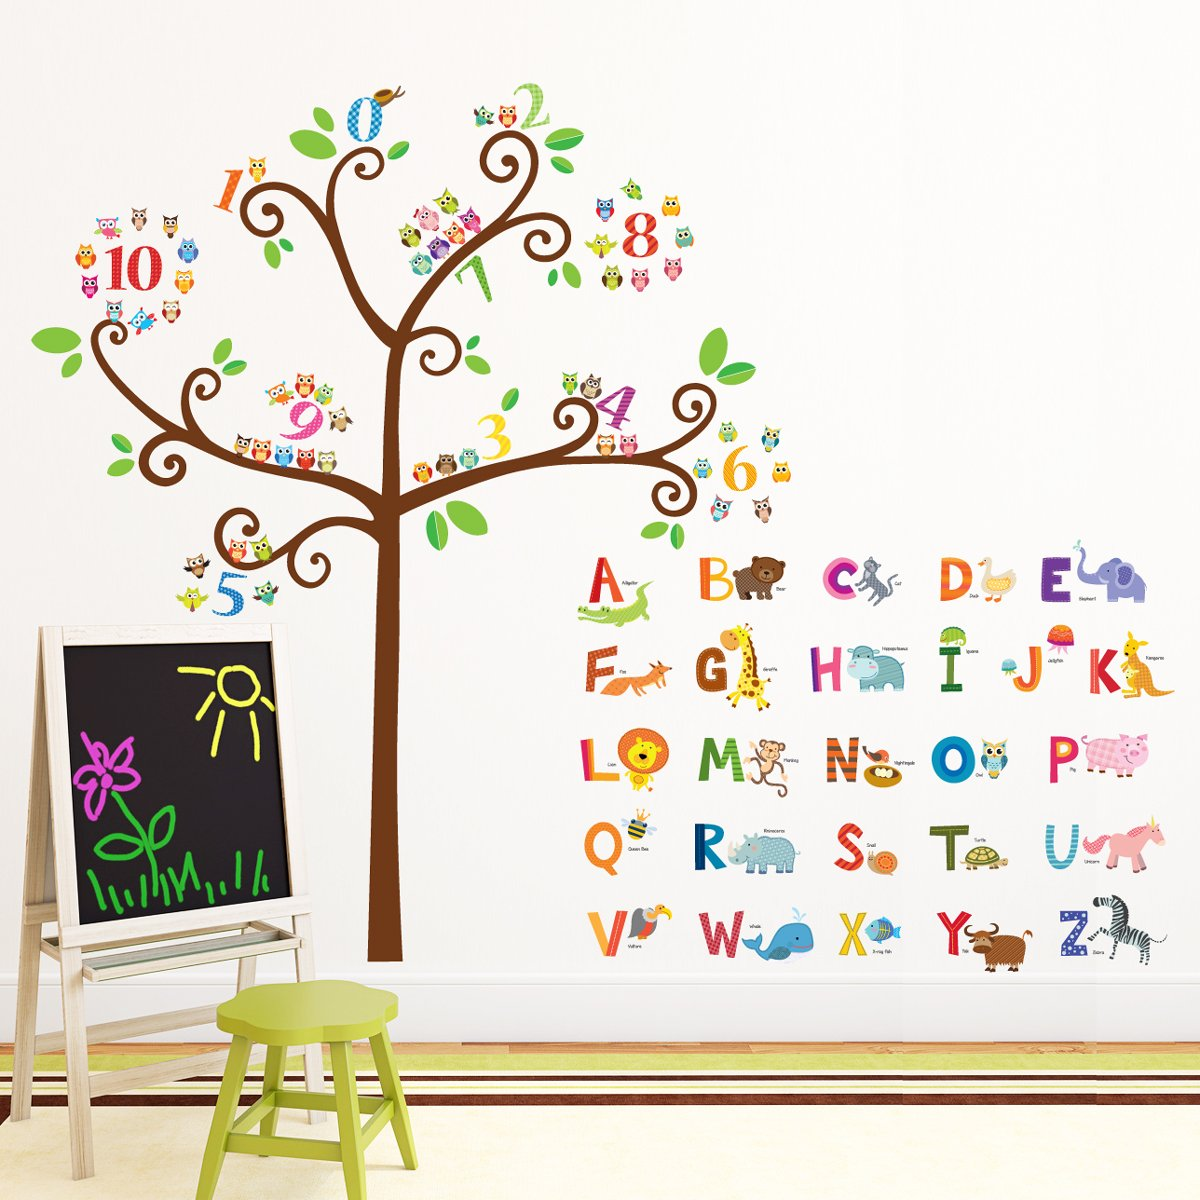 Decowall DA-1503 Animal Alphabet ABC and Owl Numbers Tree Kids Wall Decals Wall Stickers Peel and Stick Removable Wall Stickers for Kids Nursery Bedroom Living Room